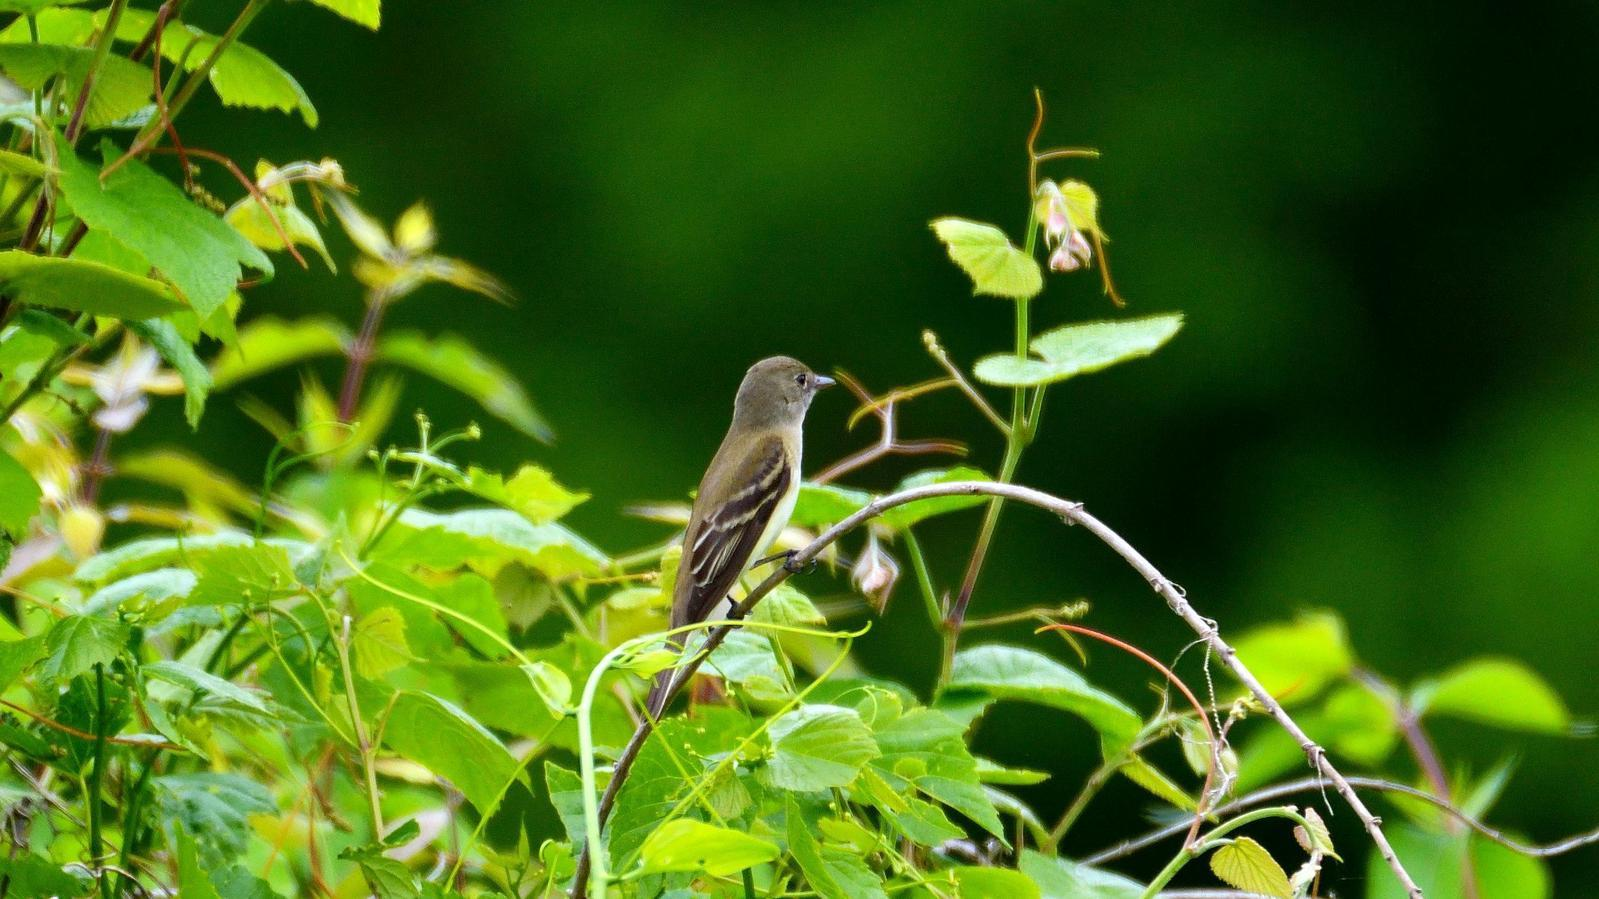 Alder Flycatcher Photo by RM Beck